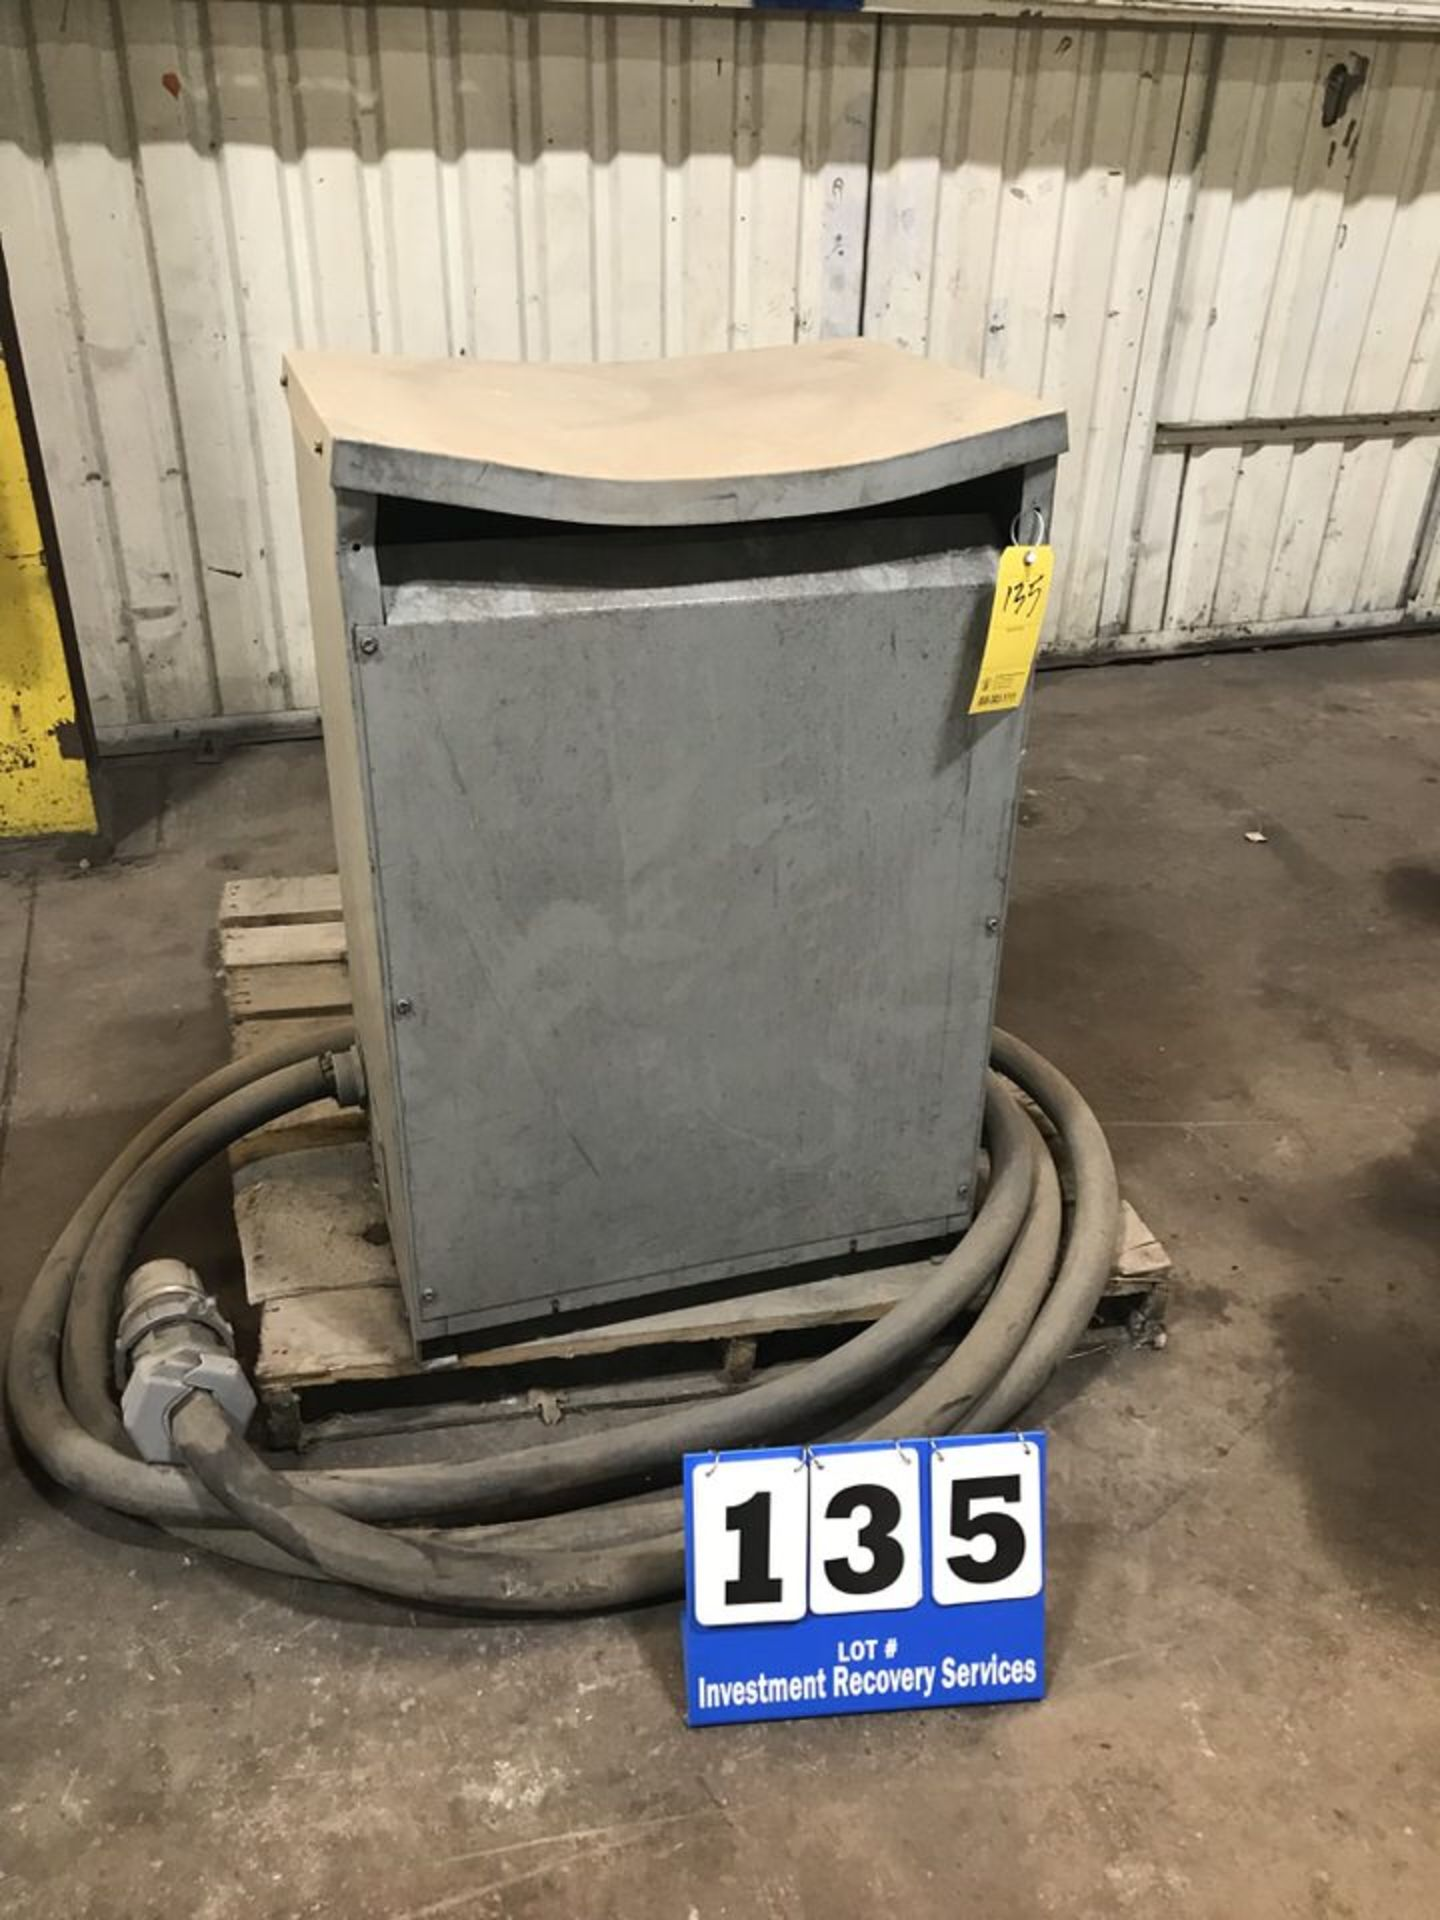 Lot 135 - 3PH Transformer, 112.5 KVA (LOCATION: 3421 N SYLVANIA, FT WORTH, TX, 76111)